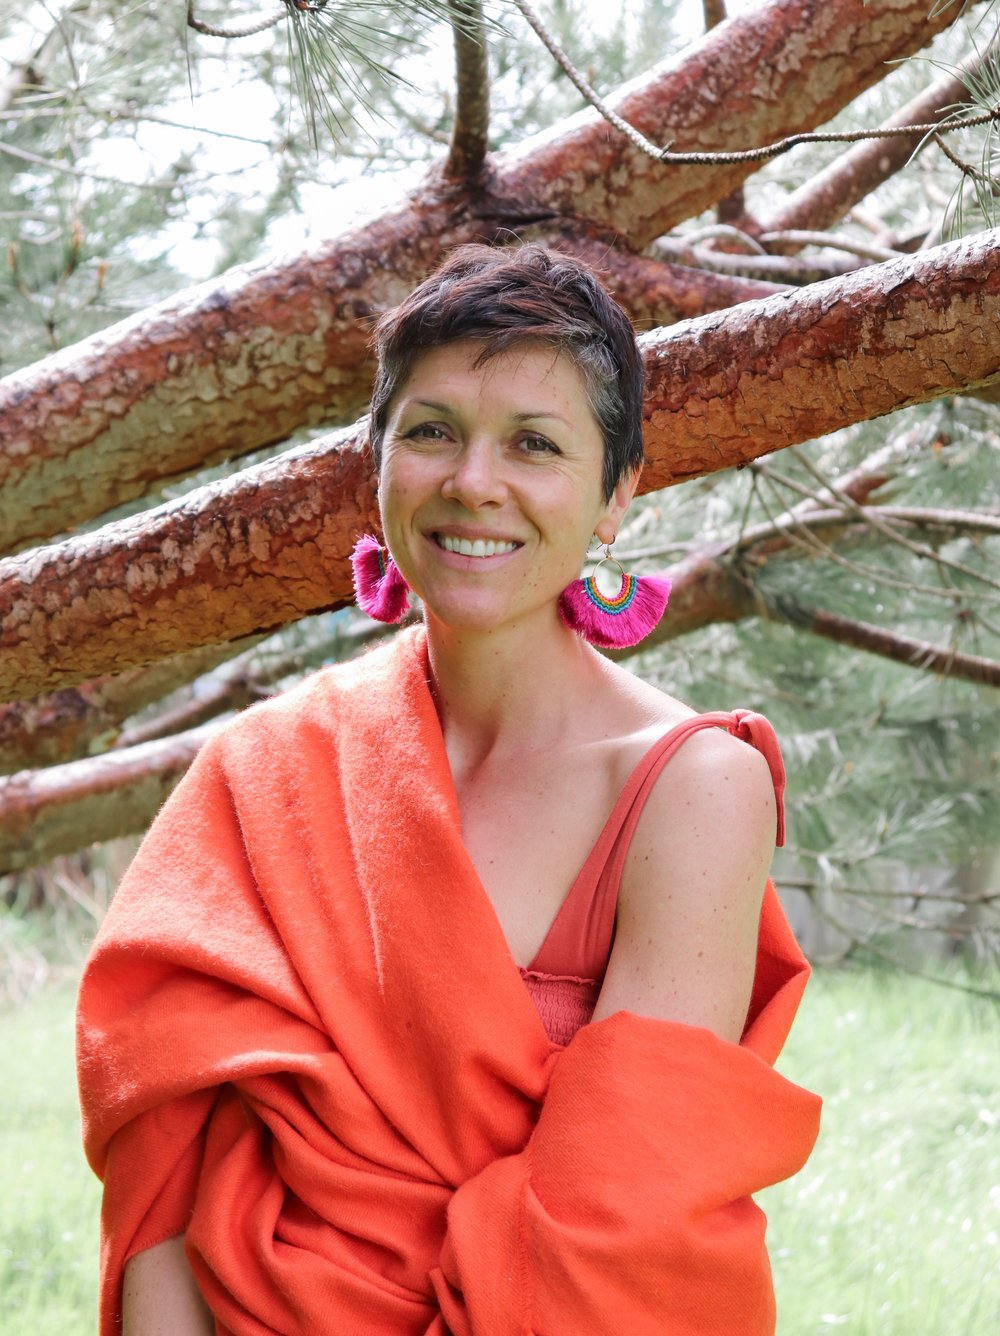 Jamie Aron - Jamie is a Santa Cruz native who enjoys all things birth-related. She believes in the transformative power of crafting one's reality through positive thinking. What better way to set intentions than through the art making process? With a background in teaching art to 'non-artists', Jamie sees the art making process as one of the highest forms of self-discovery. She is constantly inspired by the two little humans that she brought into the world, and she considers our children to be our greatest teachers. When she is not riding her bike around town with her son and her daughter or making large messes in the kitchen with these aspiring inventors/creators, Jamie helps others birth new ideas and new beginnings within her Reiki practice. She is an energy worker at Marigold's Love, her private practice dedicated to supporting clients unblock stagnant energy within their bodies, minds and souls in order to increase awareness of their authentic self and find their divine purpose in life.Website: marigoldslove.comIG: @marigoldslove